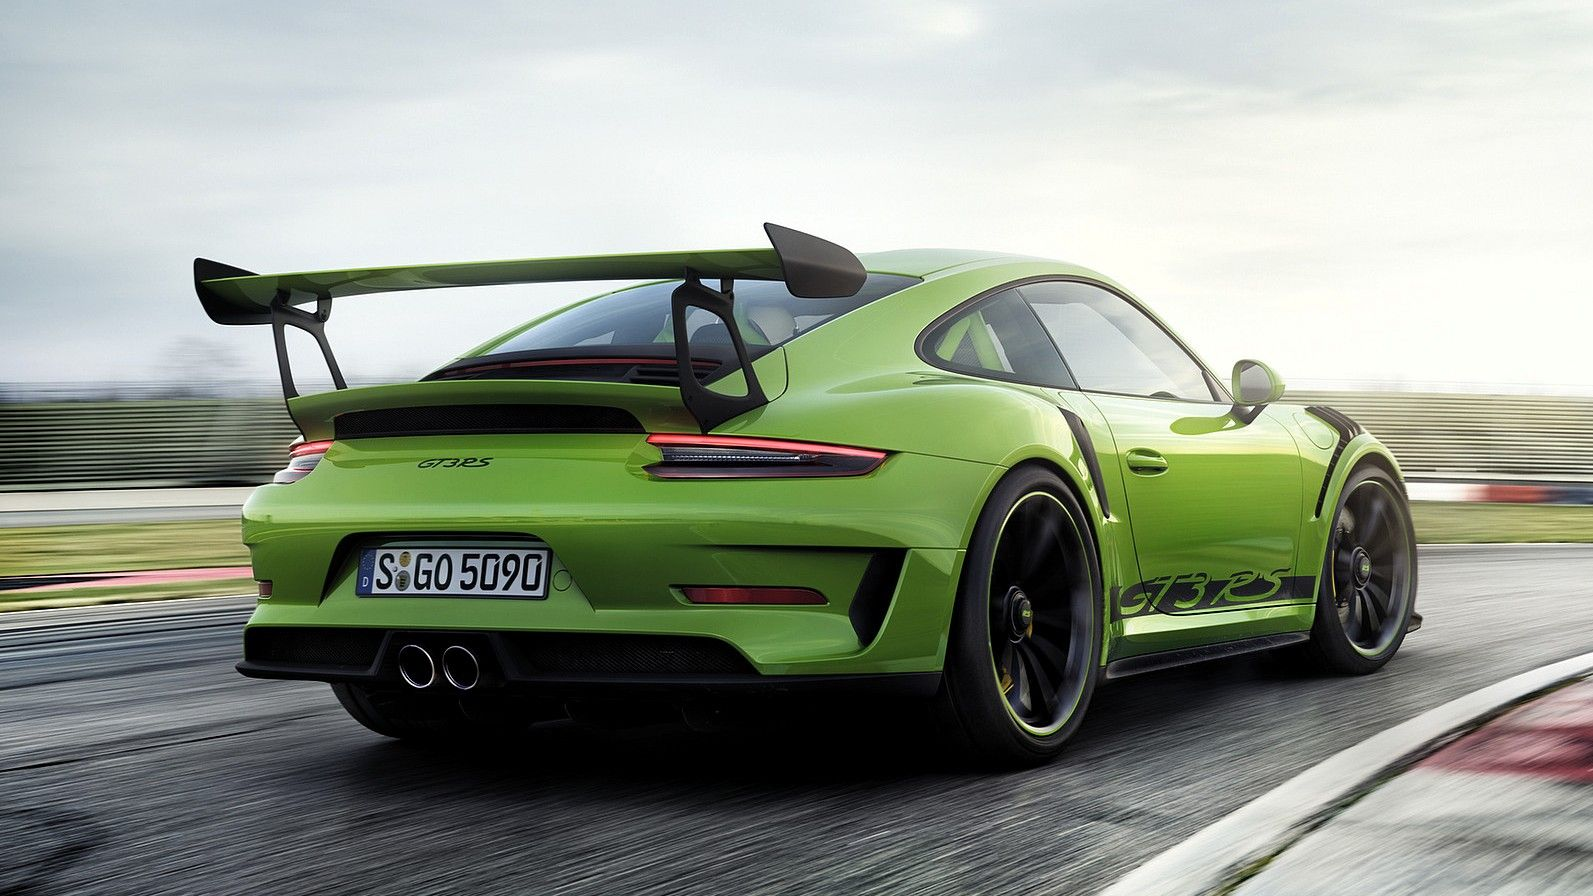 2019 Porsche 911 GT3 RS front rear quarters lizard green